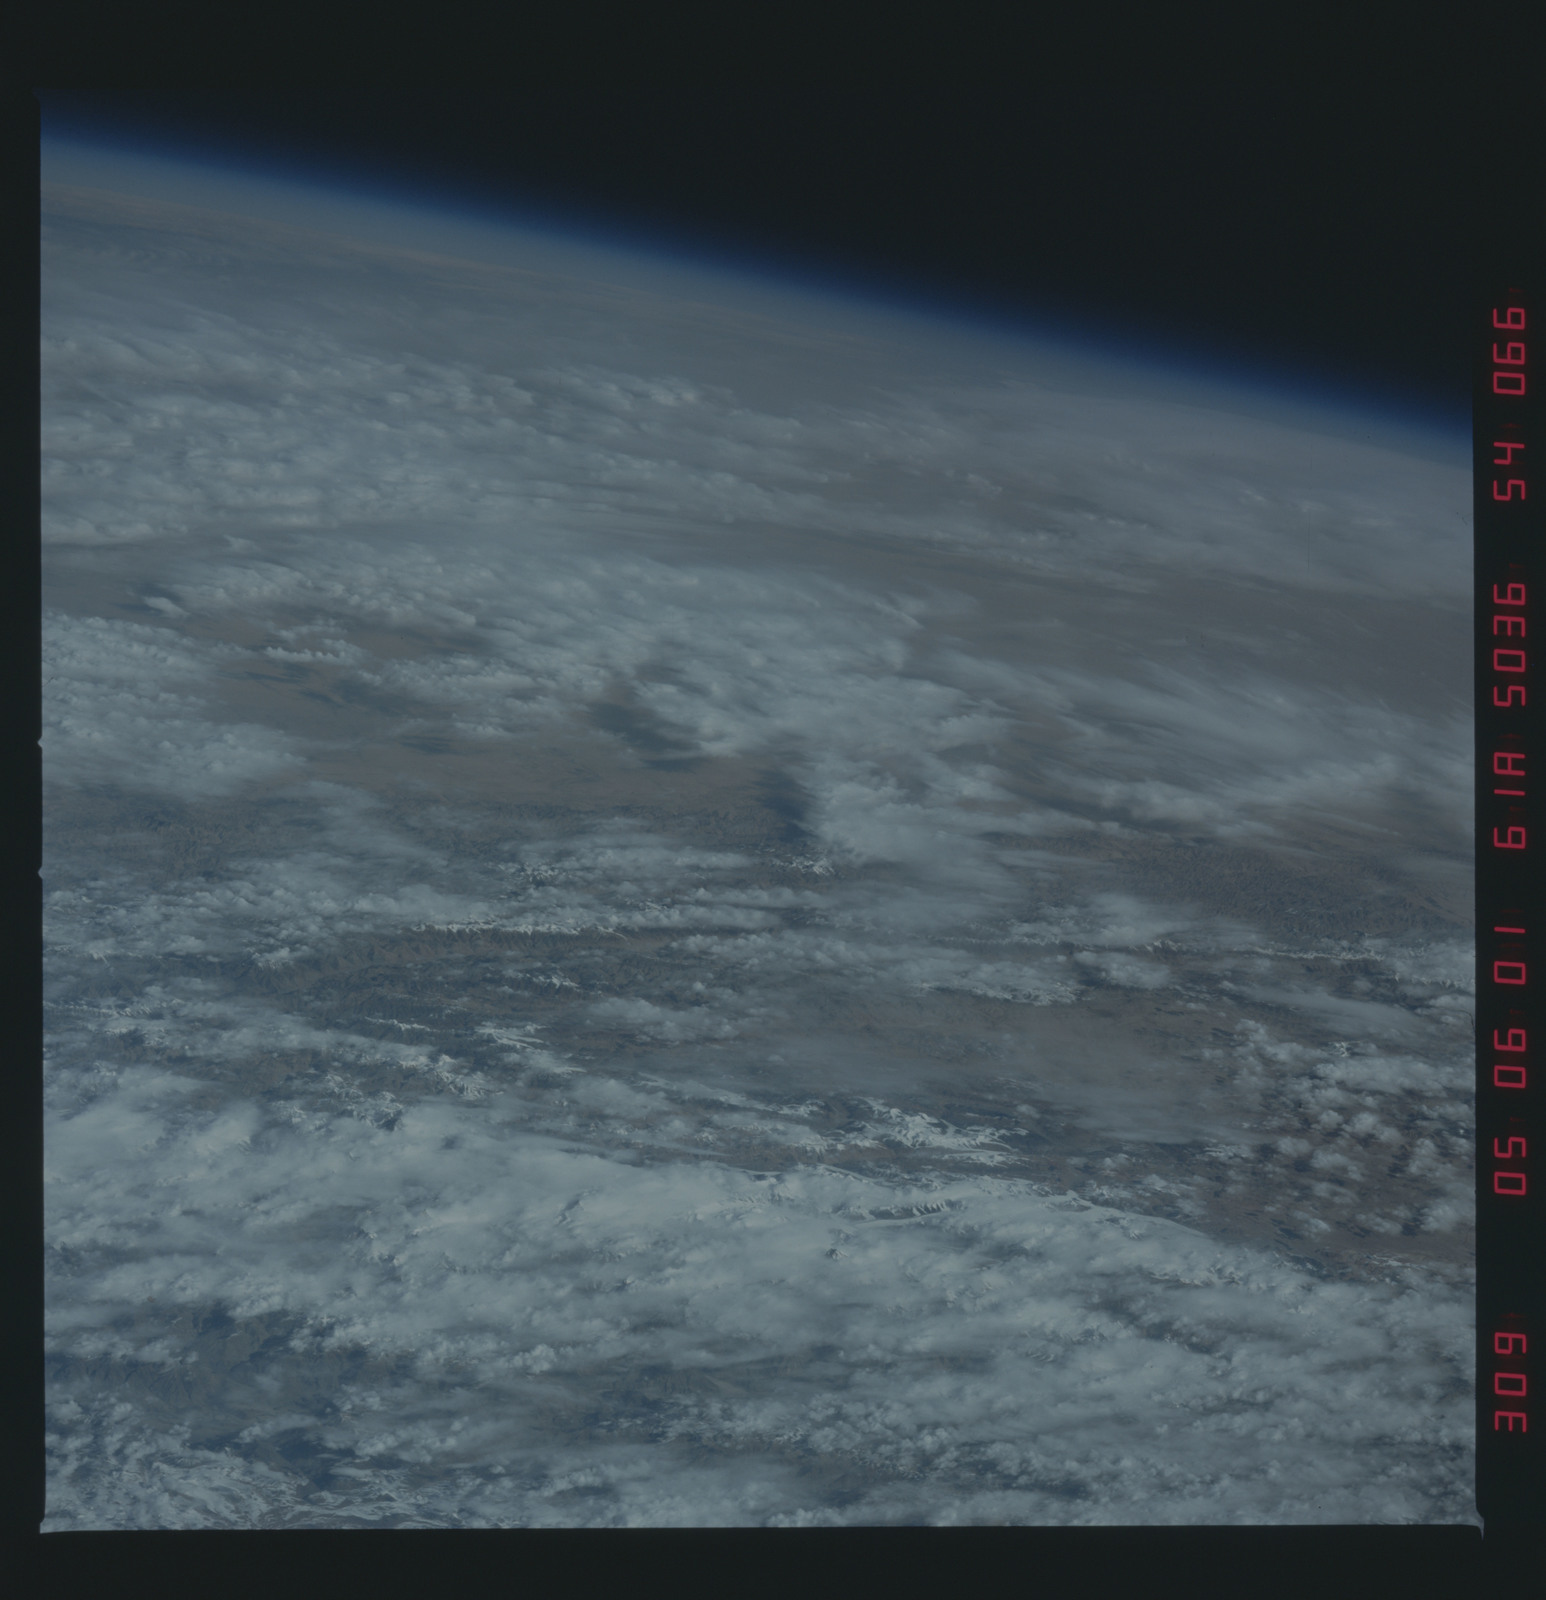 61A-54-066 - STS-61A - STS-61A earth observations